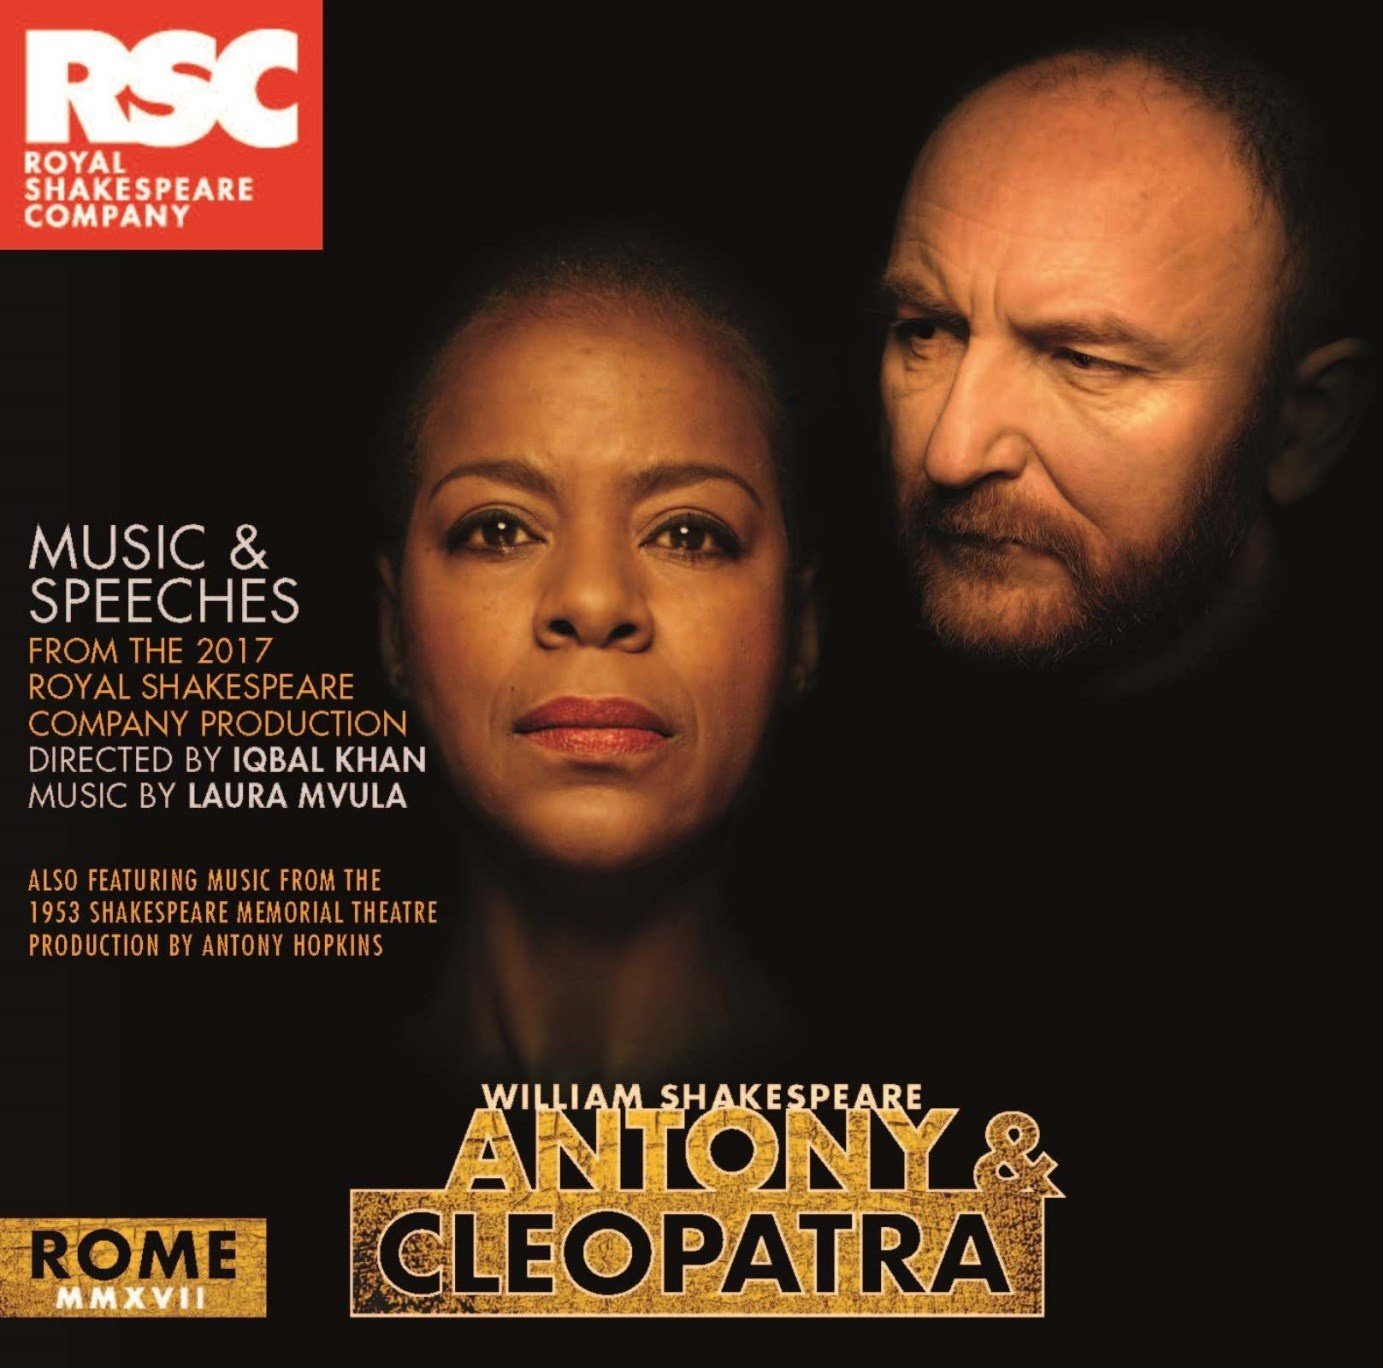 https://0201.nccdn.net/1_2/000/000/0da/cf8/62351-antony-and-cleopatra-music--speeches-cd-2017-normal-1383x1368.jpg